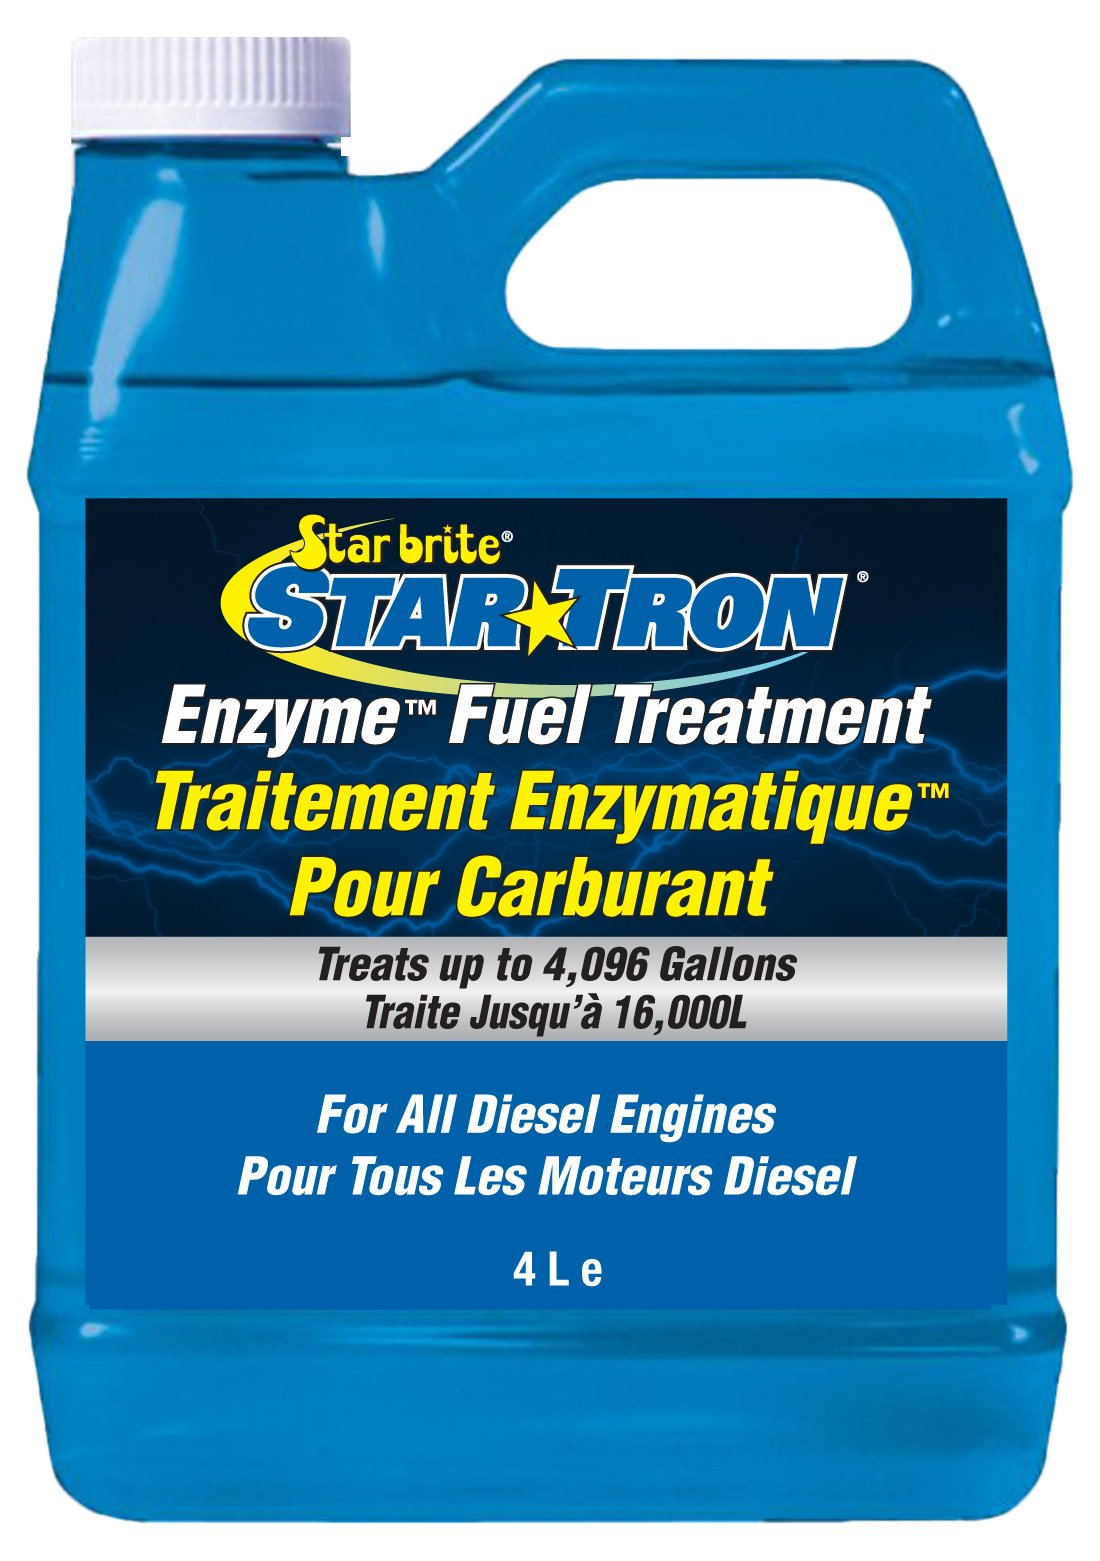 Star brite 093100N Concentrated Diesel Formula 931 Tron Enzyme Fuel Treatment, 1 gallon